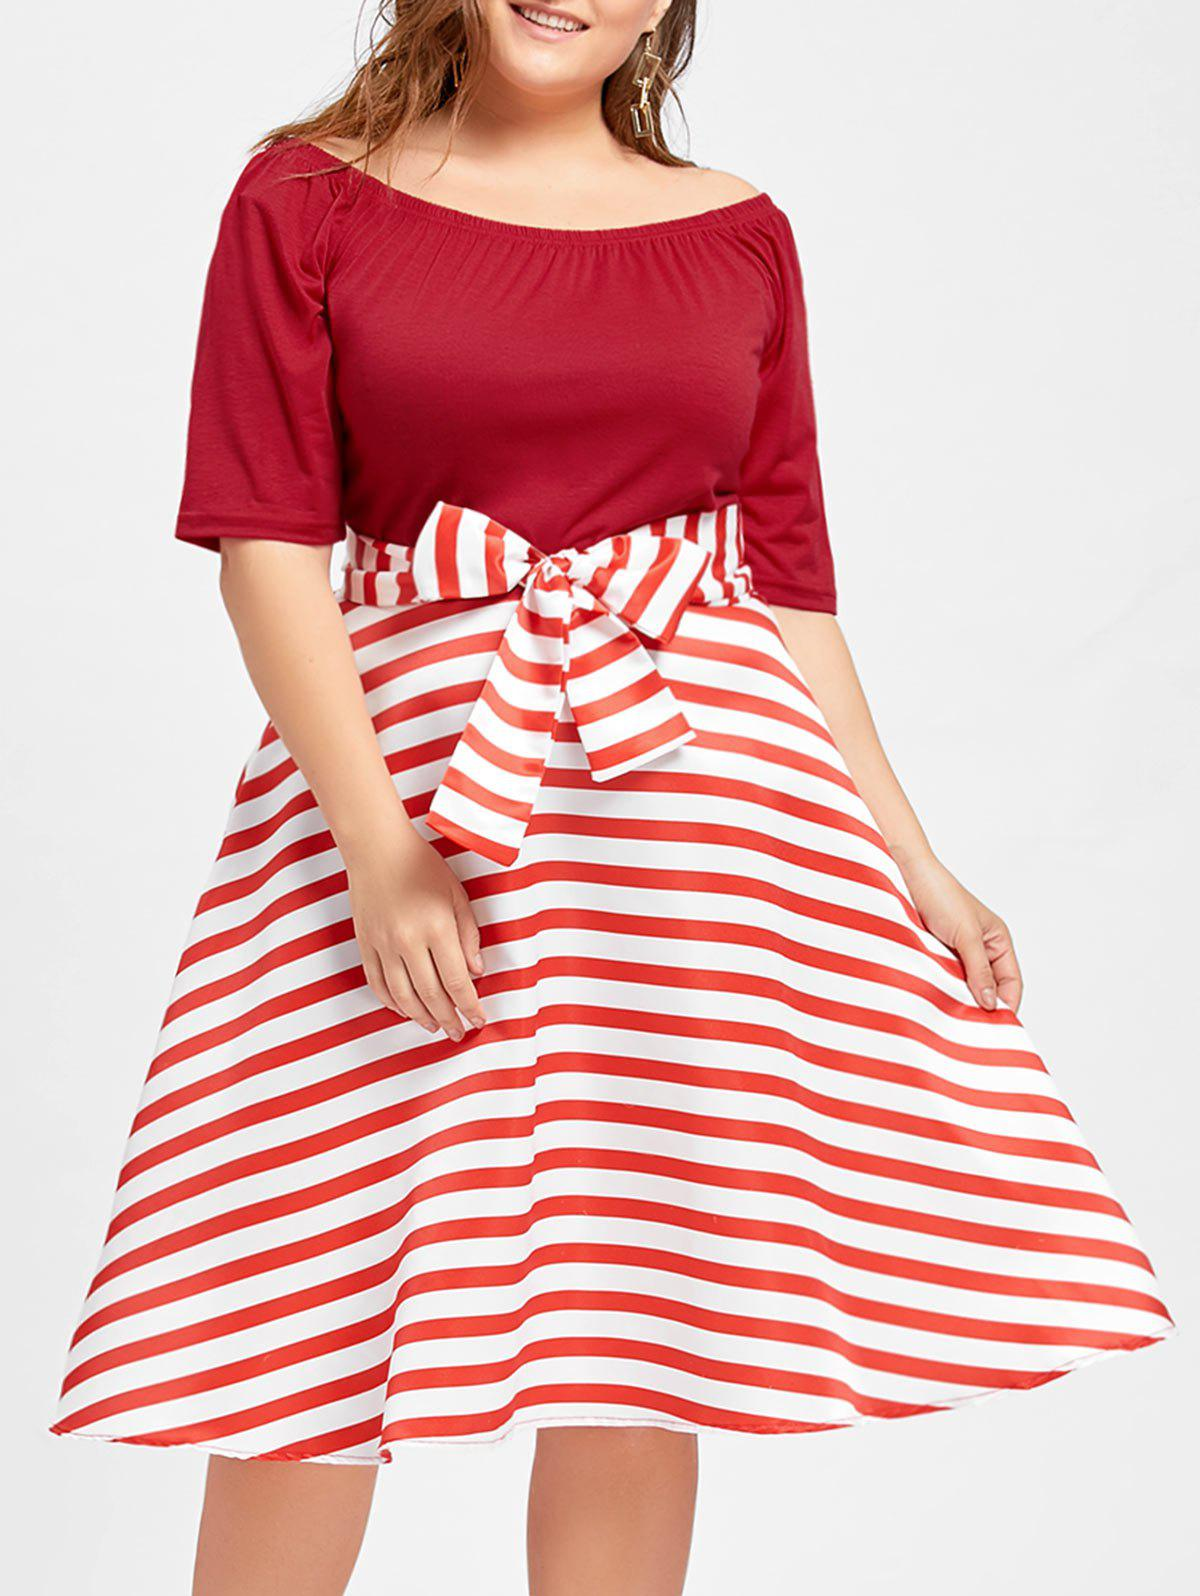 Stripe Plus Size Christmas Party Knee Length DressWOMEN<br><br>Size: 2XL; Color: RED; Style: Cute; Material: Cotton Blend,Polyester; Silhouette: Ball Gown; Dresses Length: Knee-Length; Neckline: Boat Neck; Sleeve Length: Short Sleeves; Pattern Type: Striped; With Belt: Yes; Season: Fall,Winter; Weight: 0.3700kg; Package Contents: 1 x Dress 1 x Belt;